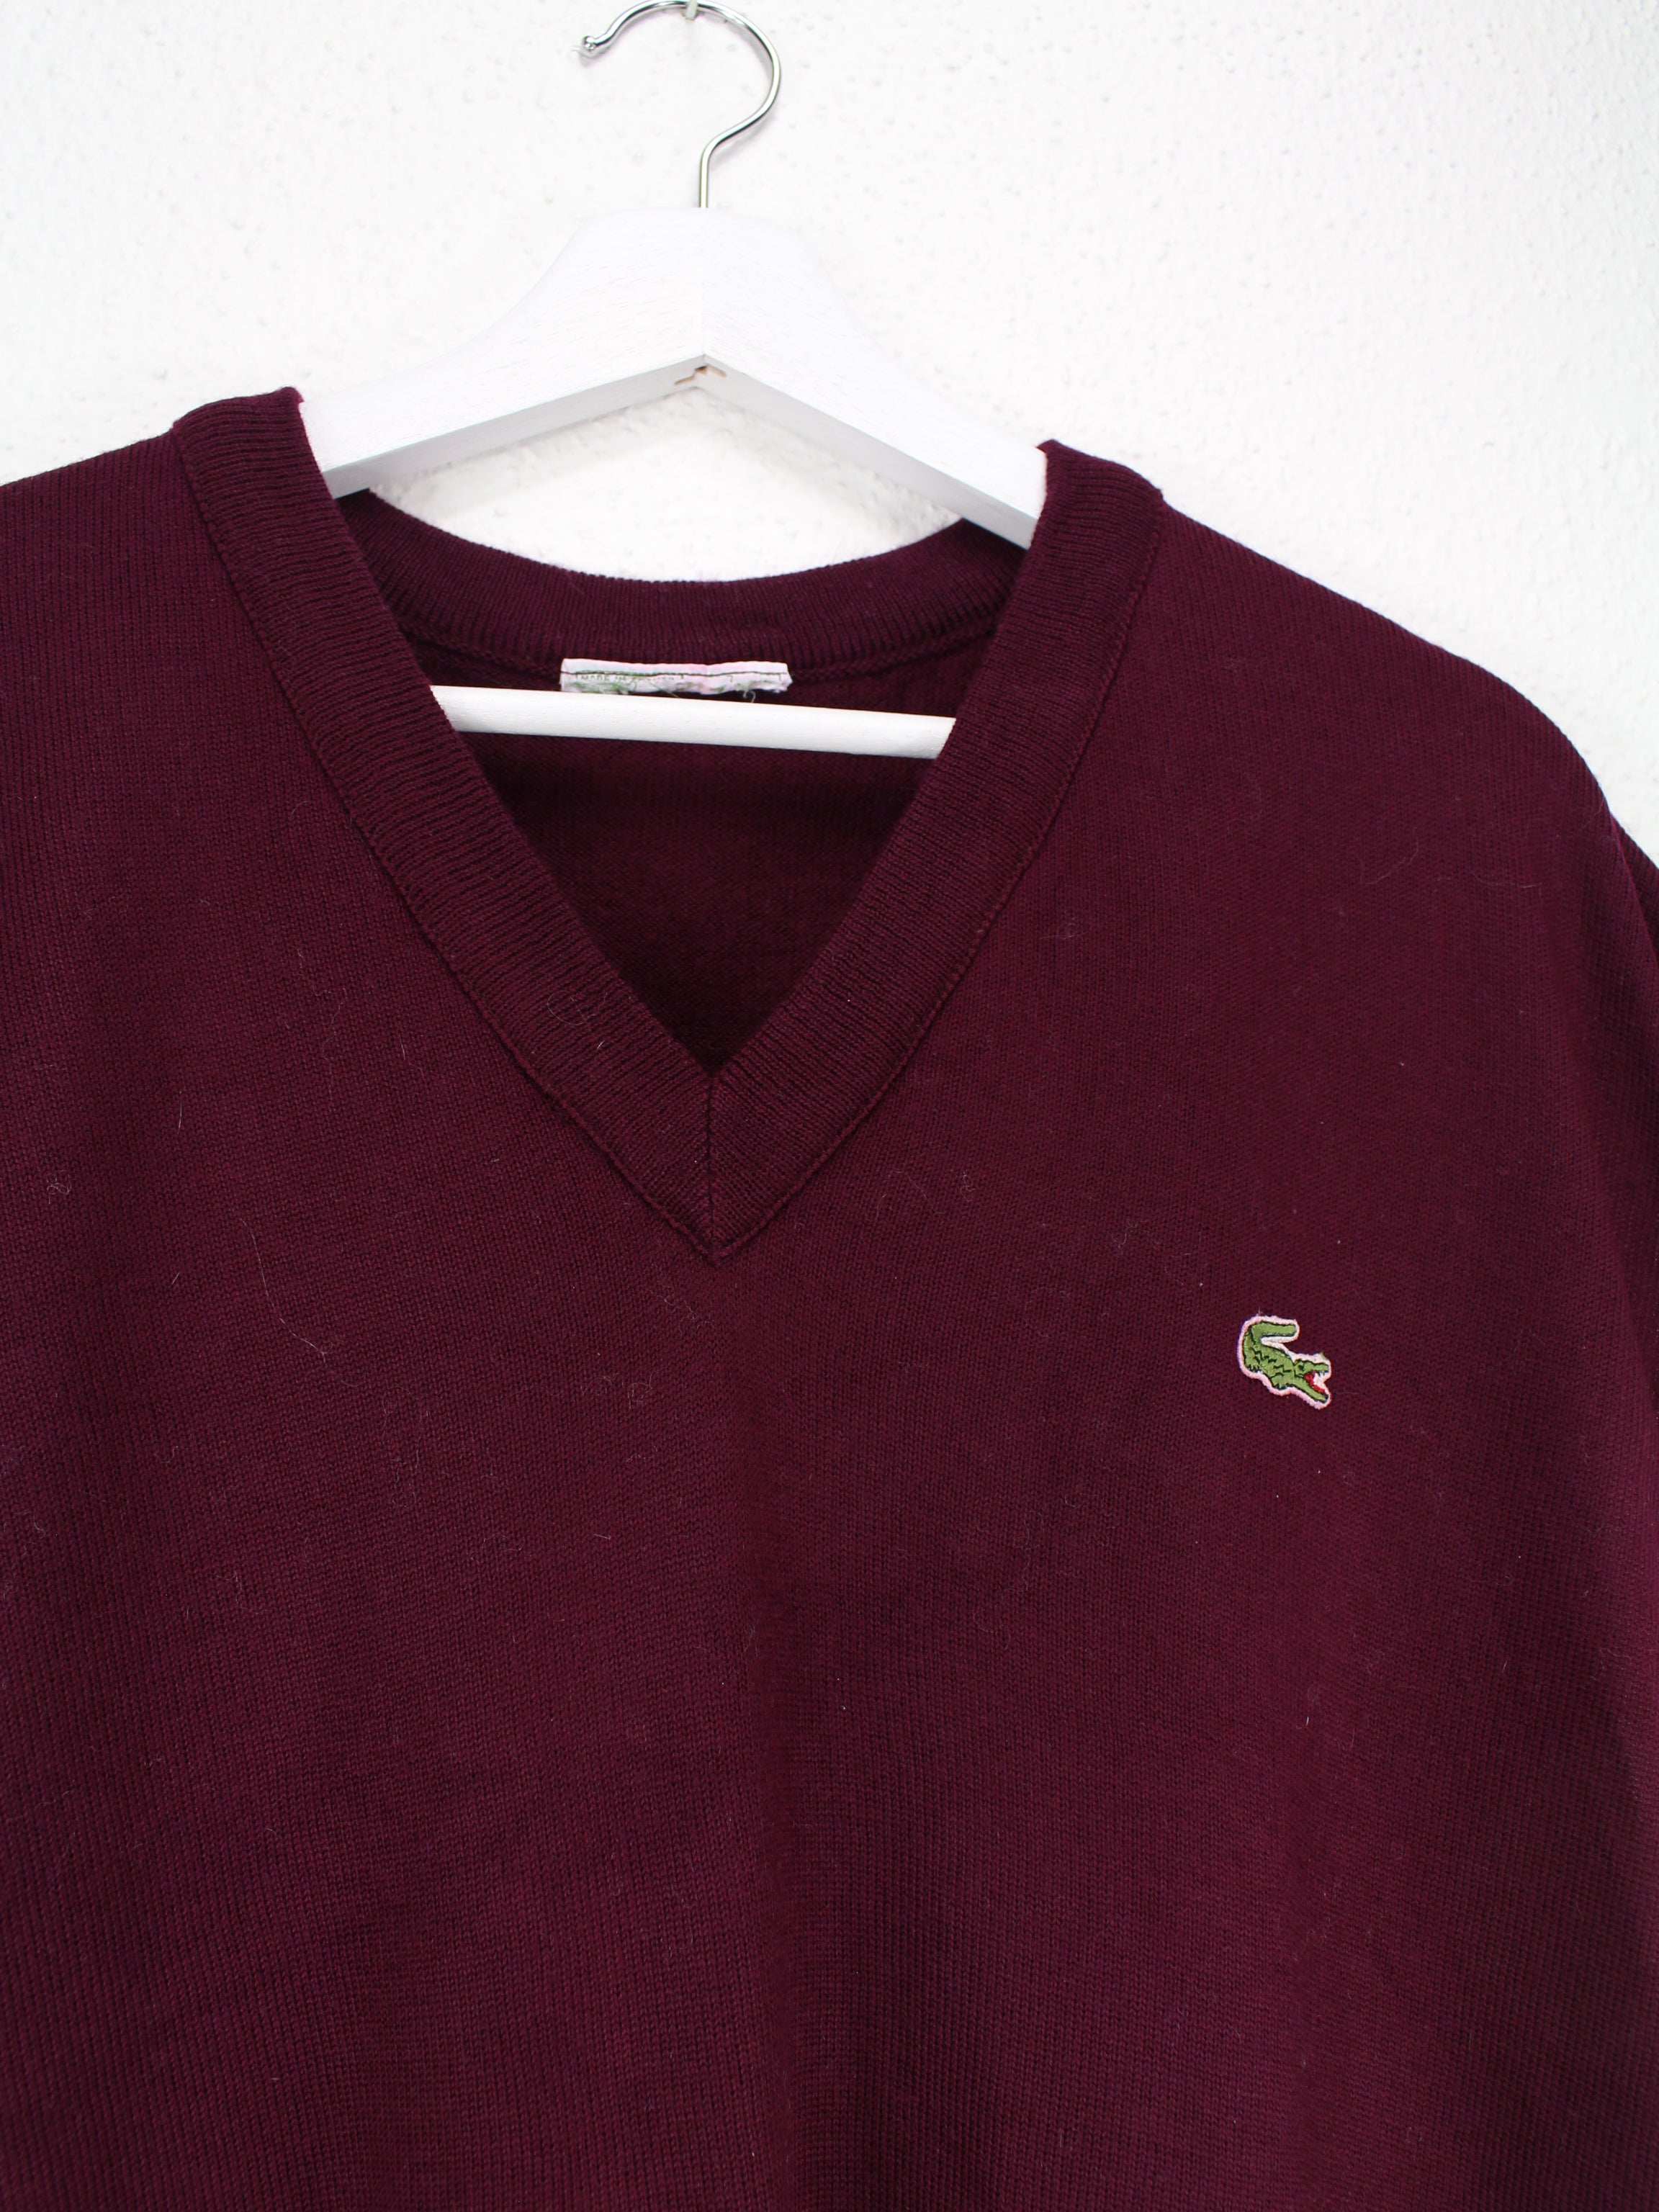 Lacoste Pullunder Rot XL